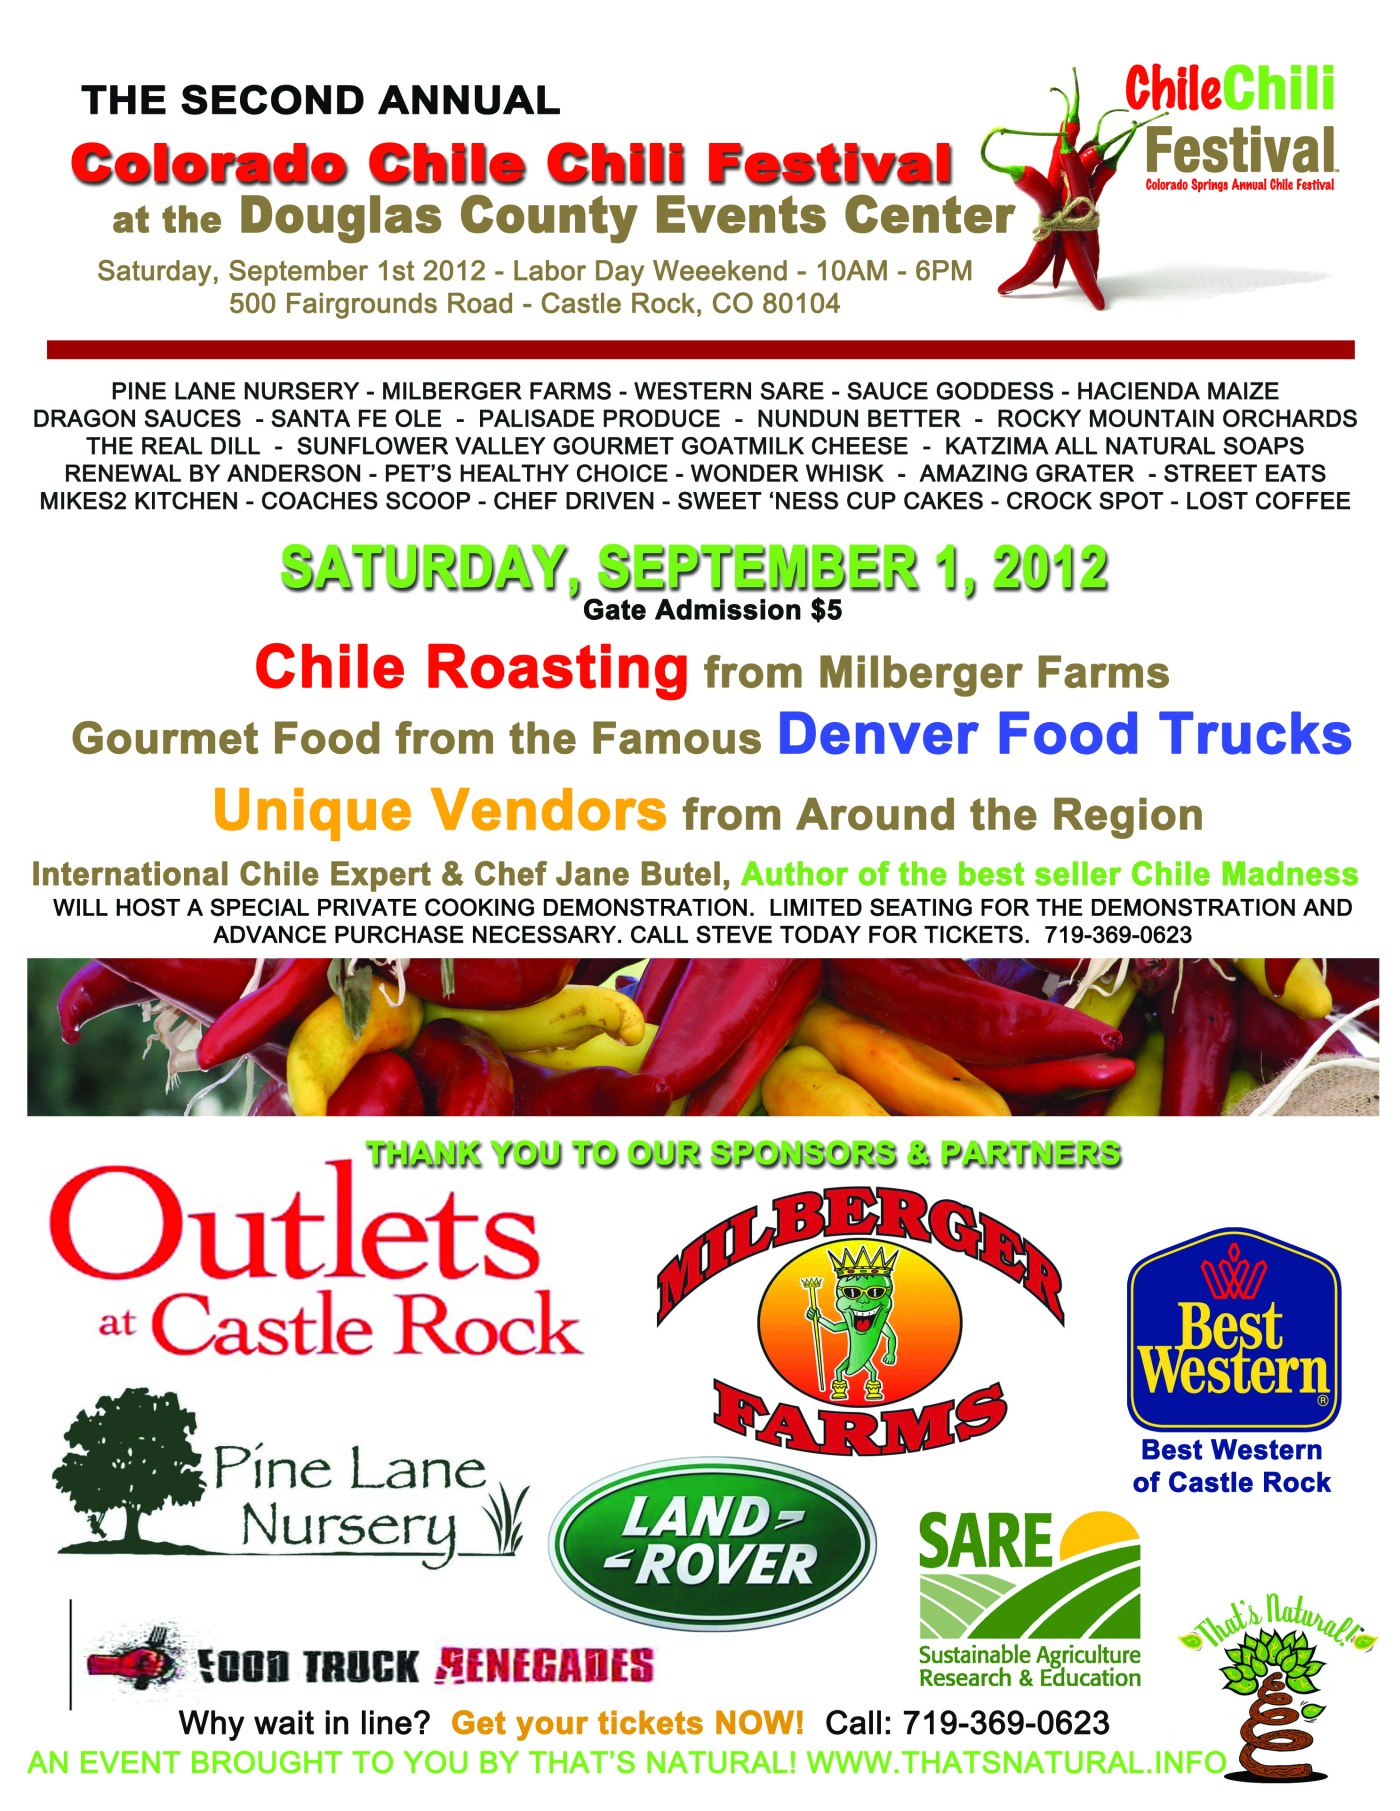 8 5x11 poster design - Chile Chili Fest 2012 Poster Design From That S Natural Marketing That S Natural